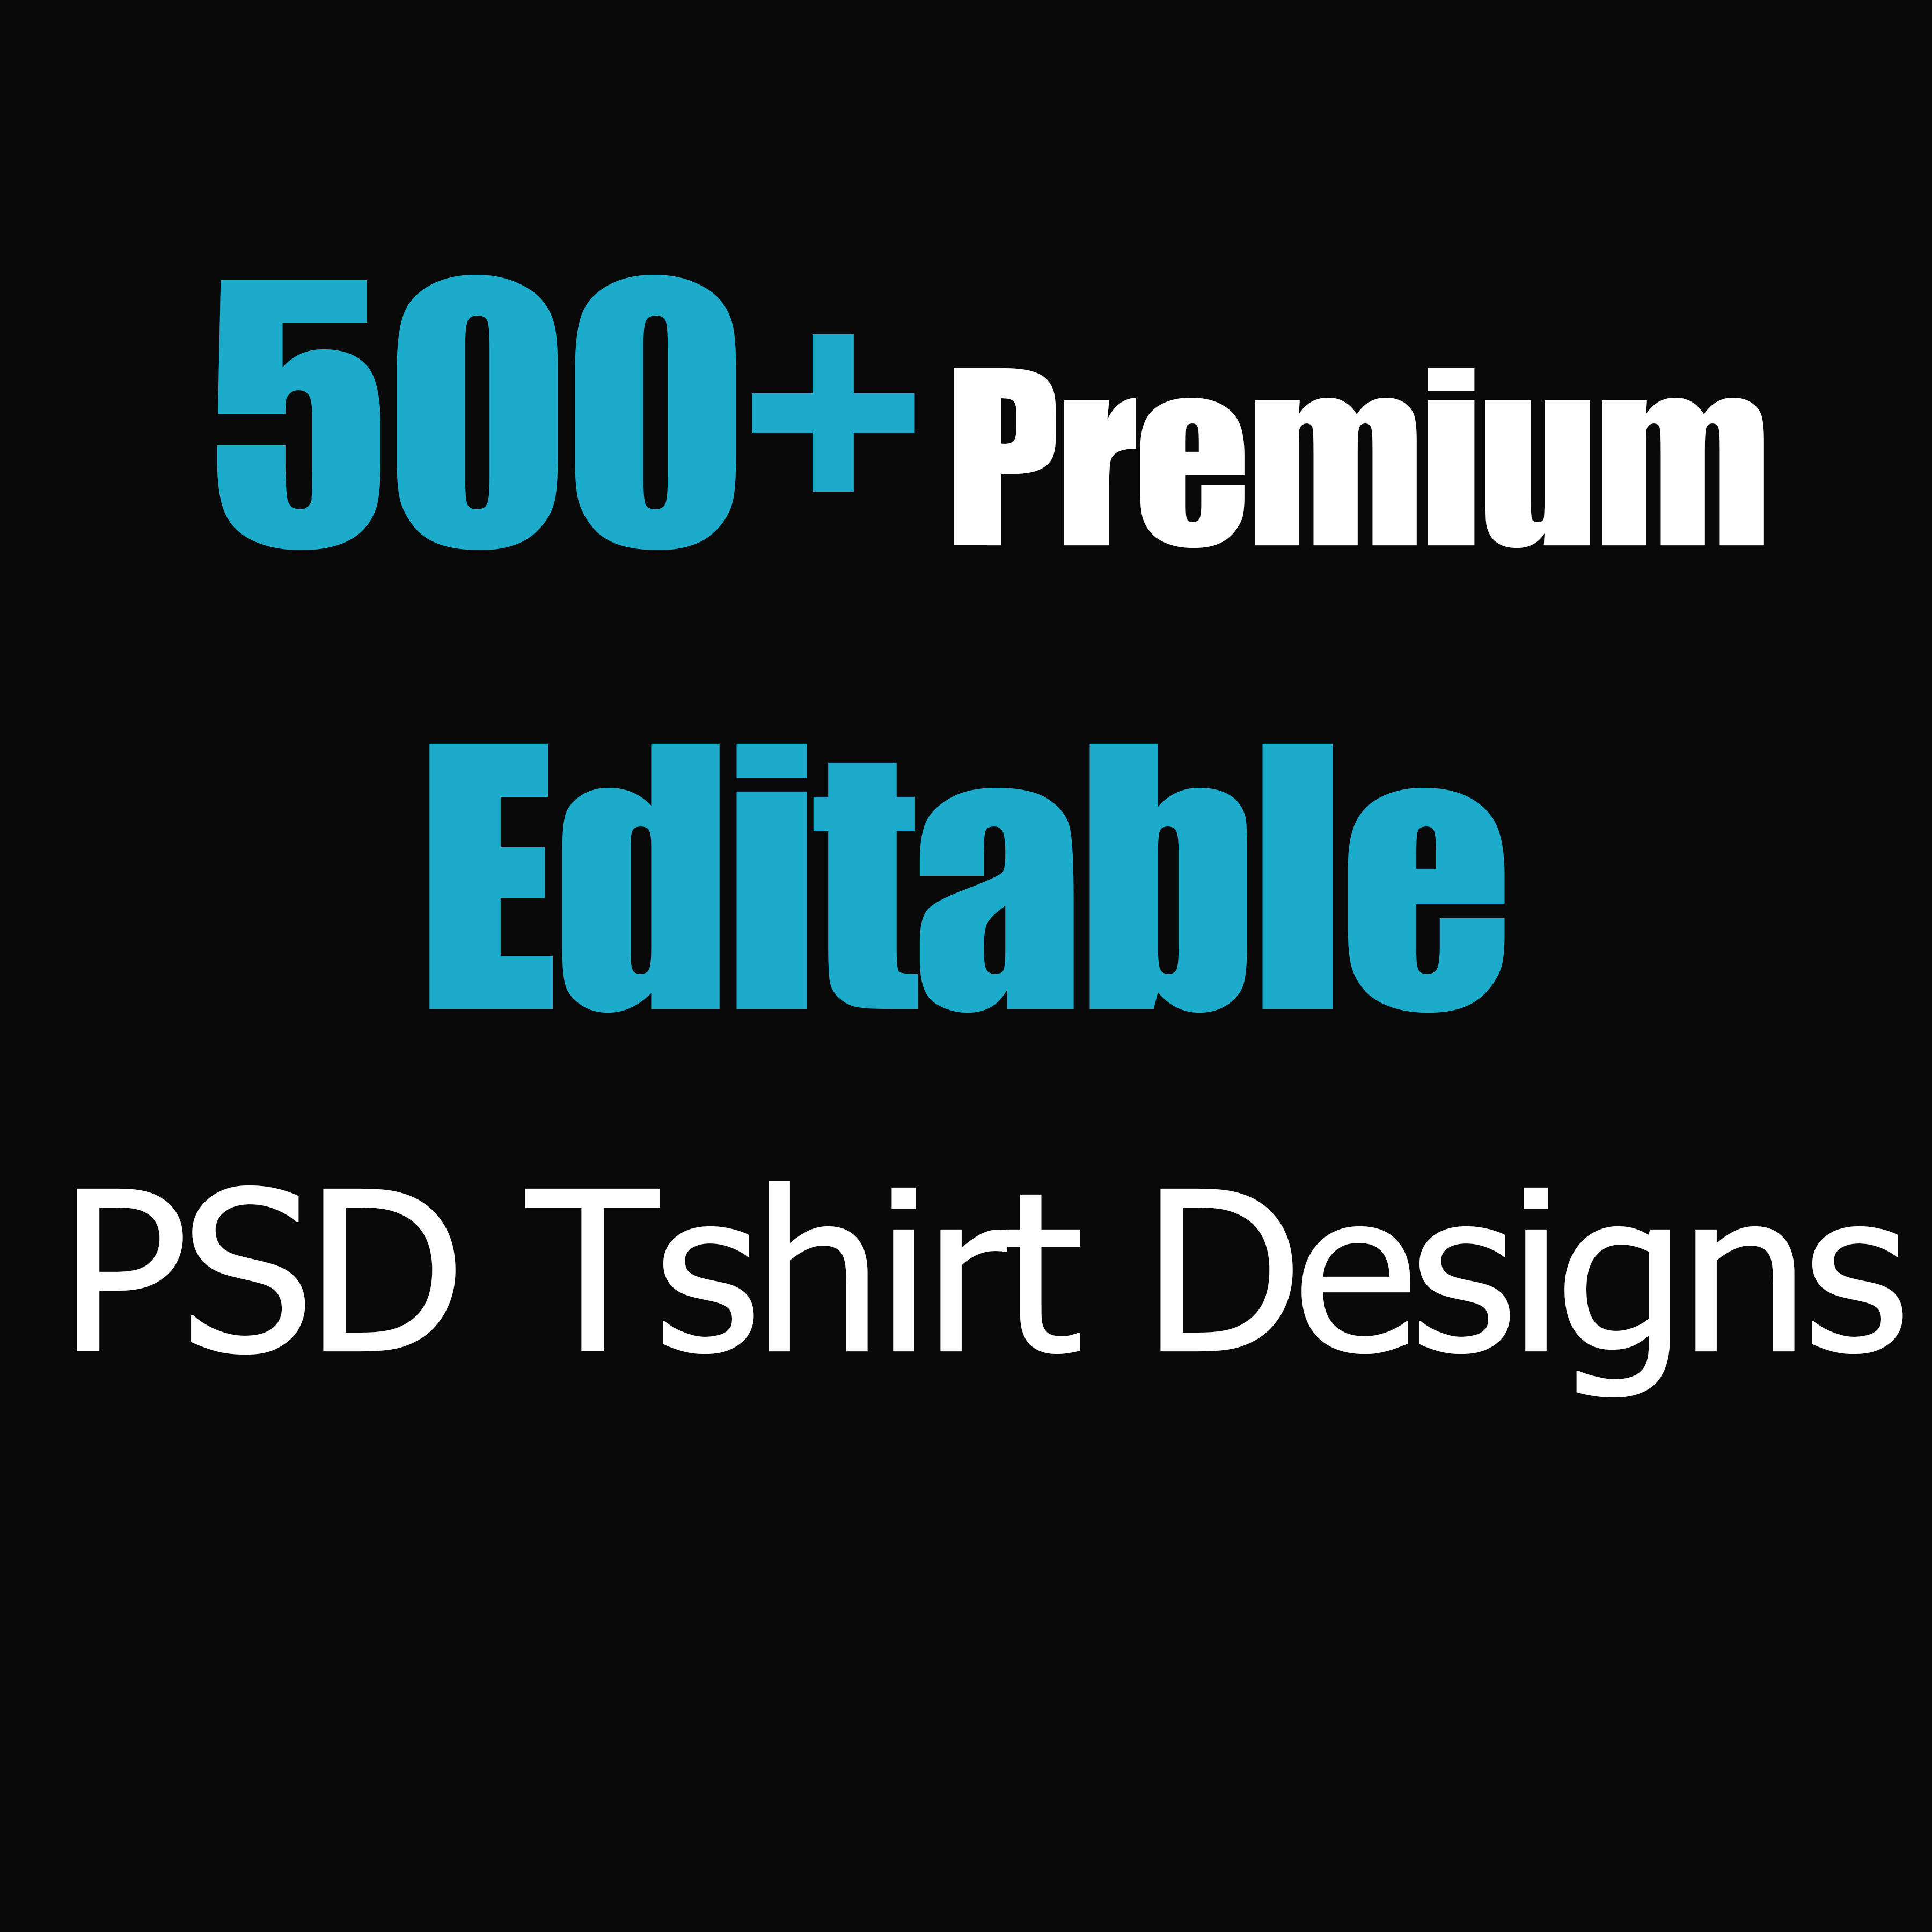 give you 500+ Premium Editable PSD T-Shirt Designs